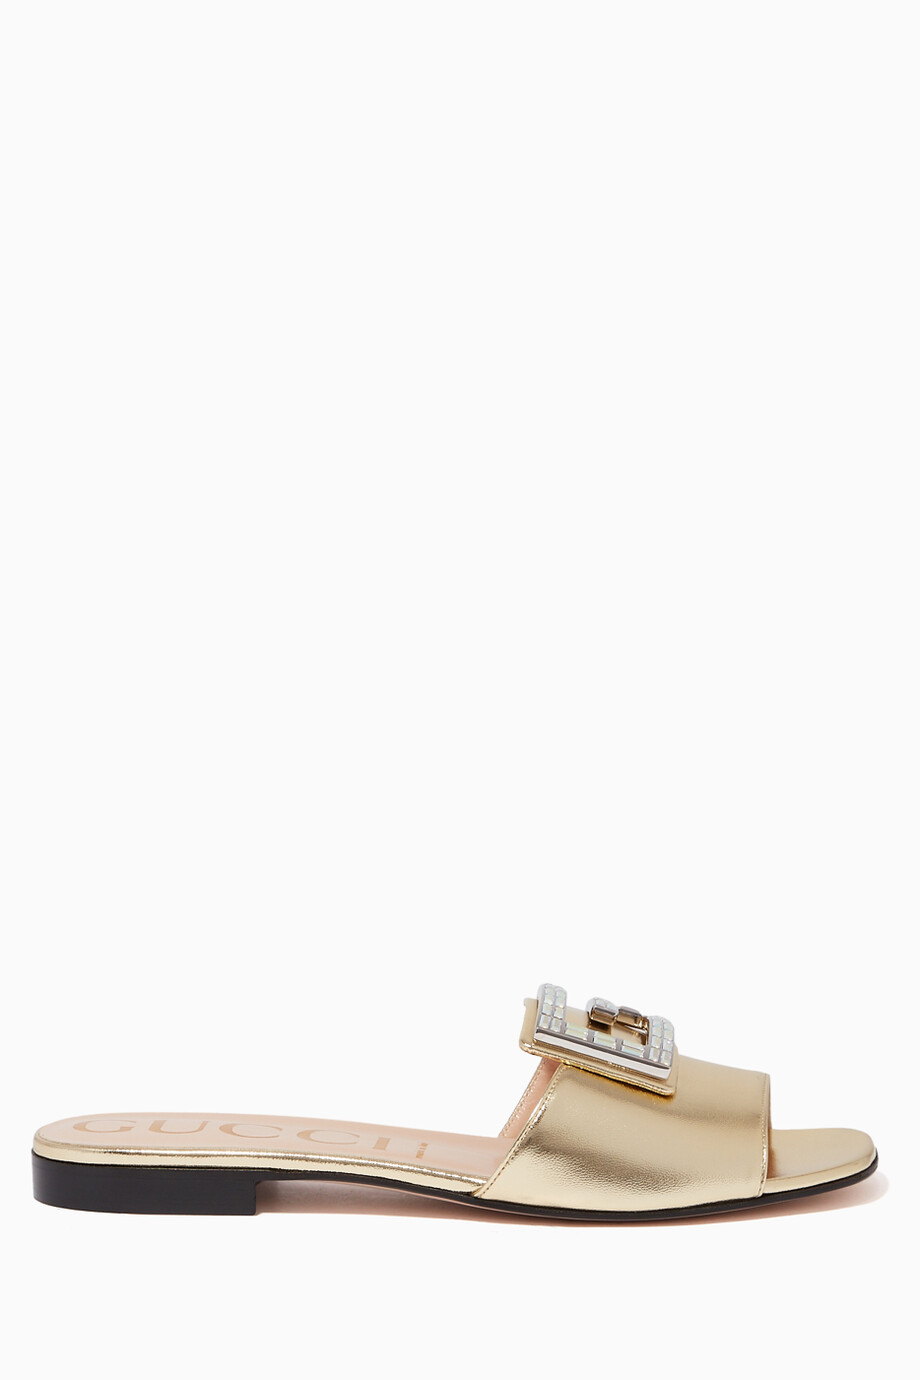 7d3f184d0 Shop Gucci Gold Madelyn Metallic Leather Slides for Women | Ounass